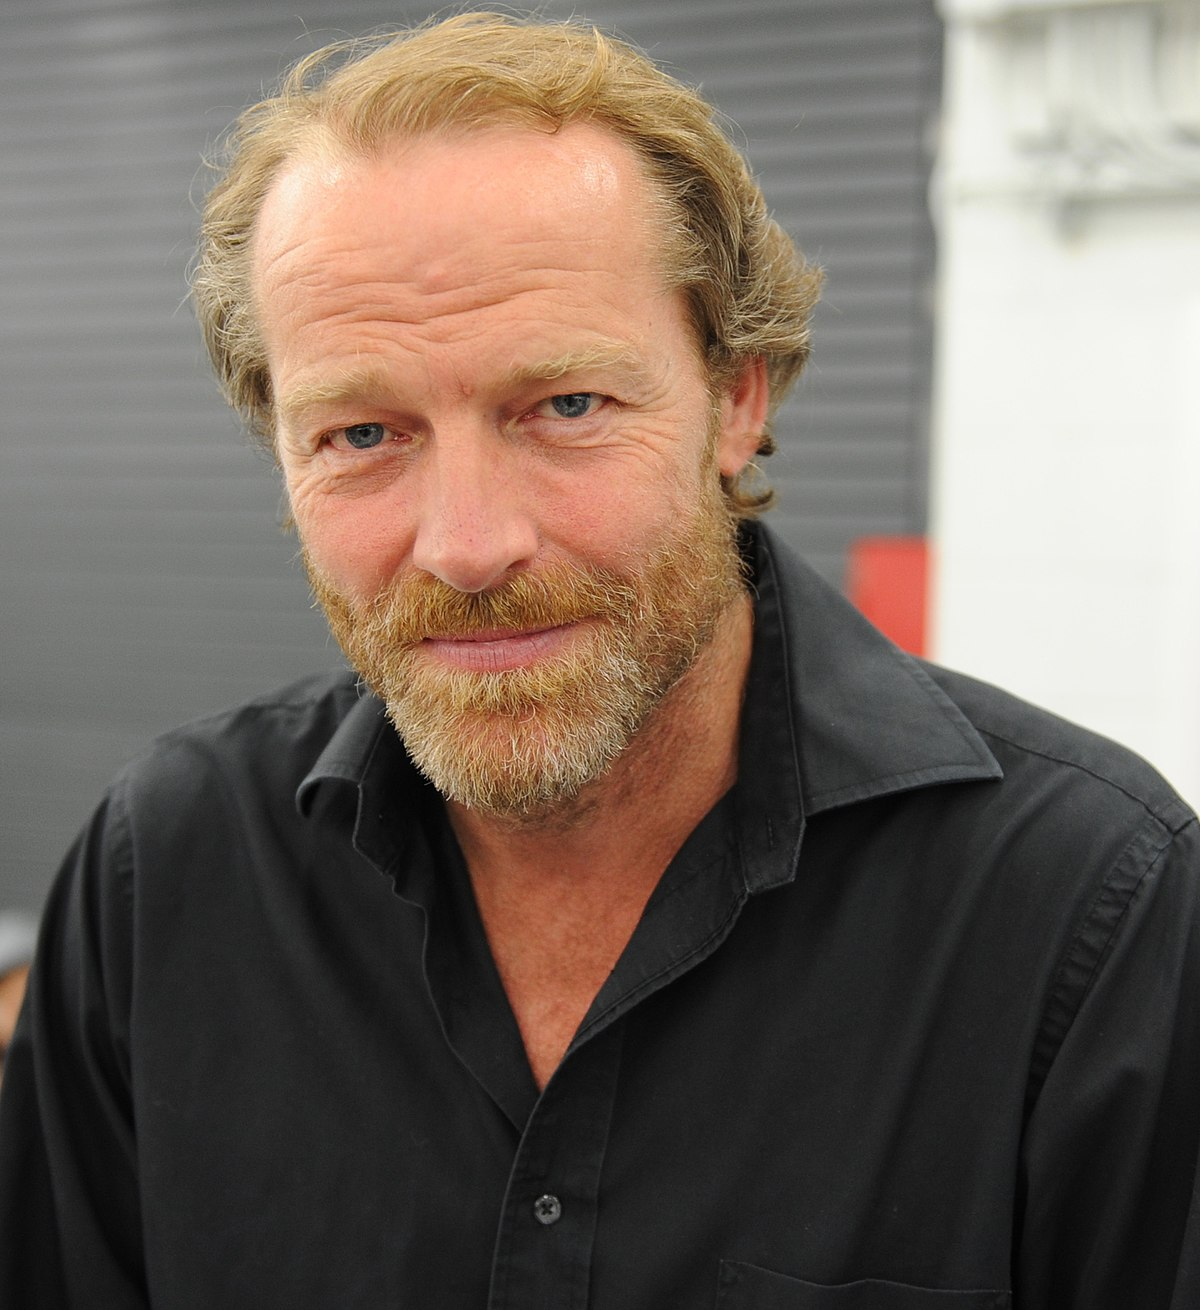 iain glen song for a raggy boyiain glen young, iain glen instagram, iain glen game of thrones, iain glen wife, iain glen height, iain glen downton abbey, iain glen song for a raggy boy, iain glen lara croft, iain glen fans, iain glen emilia clarke, iain glen macbeth, iain glen resident evil, iain glen accent, iain glen interview, iain glen kingdom of heaven